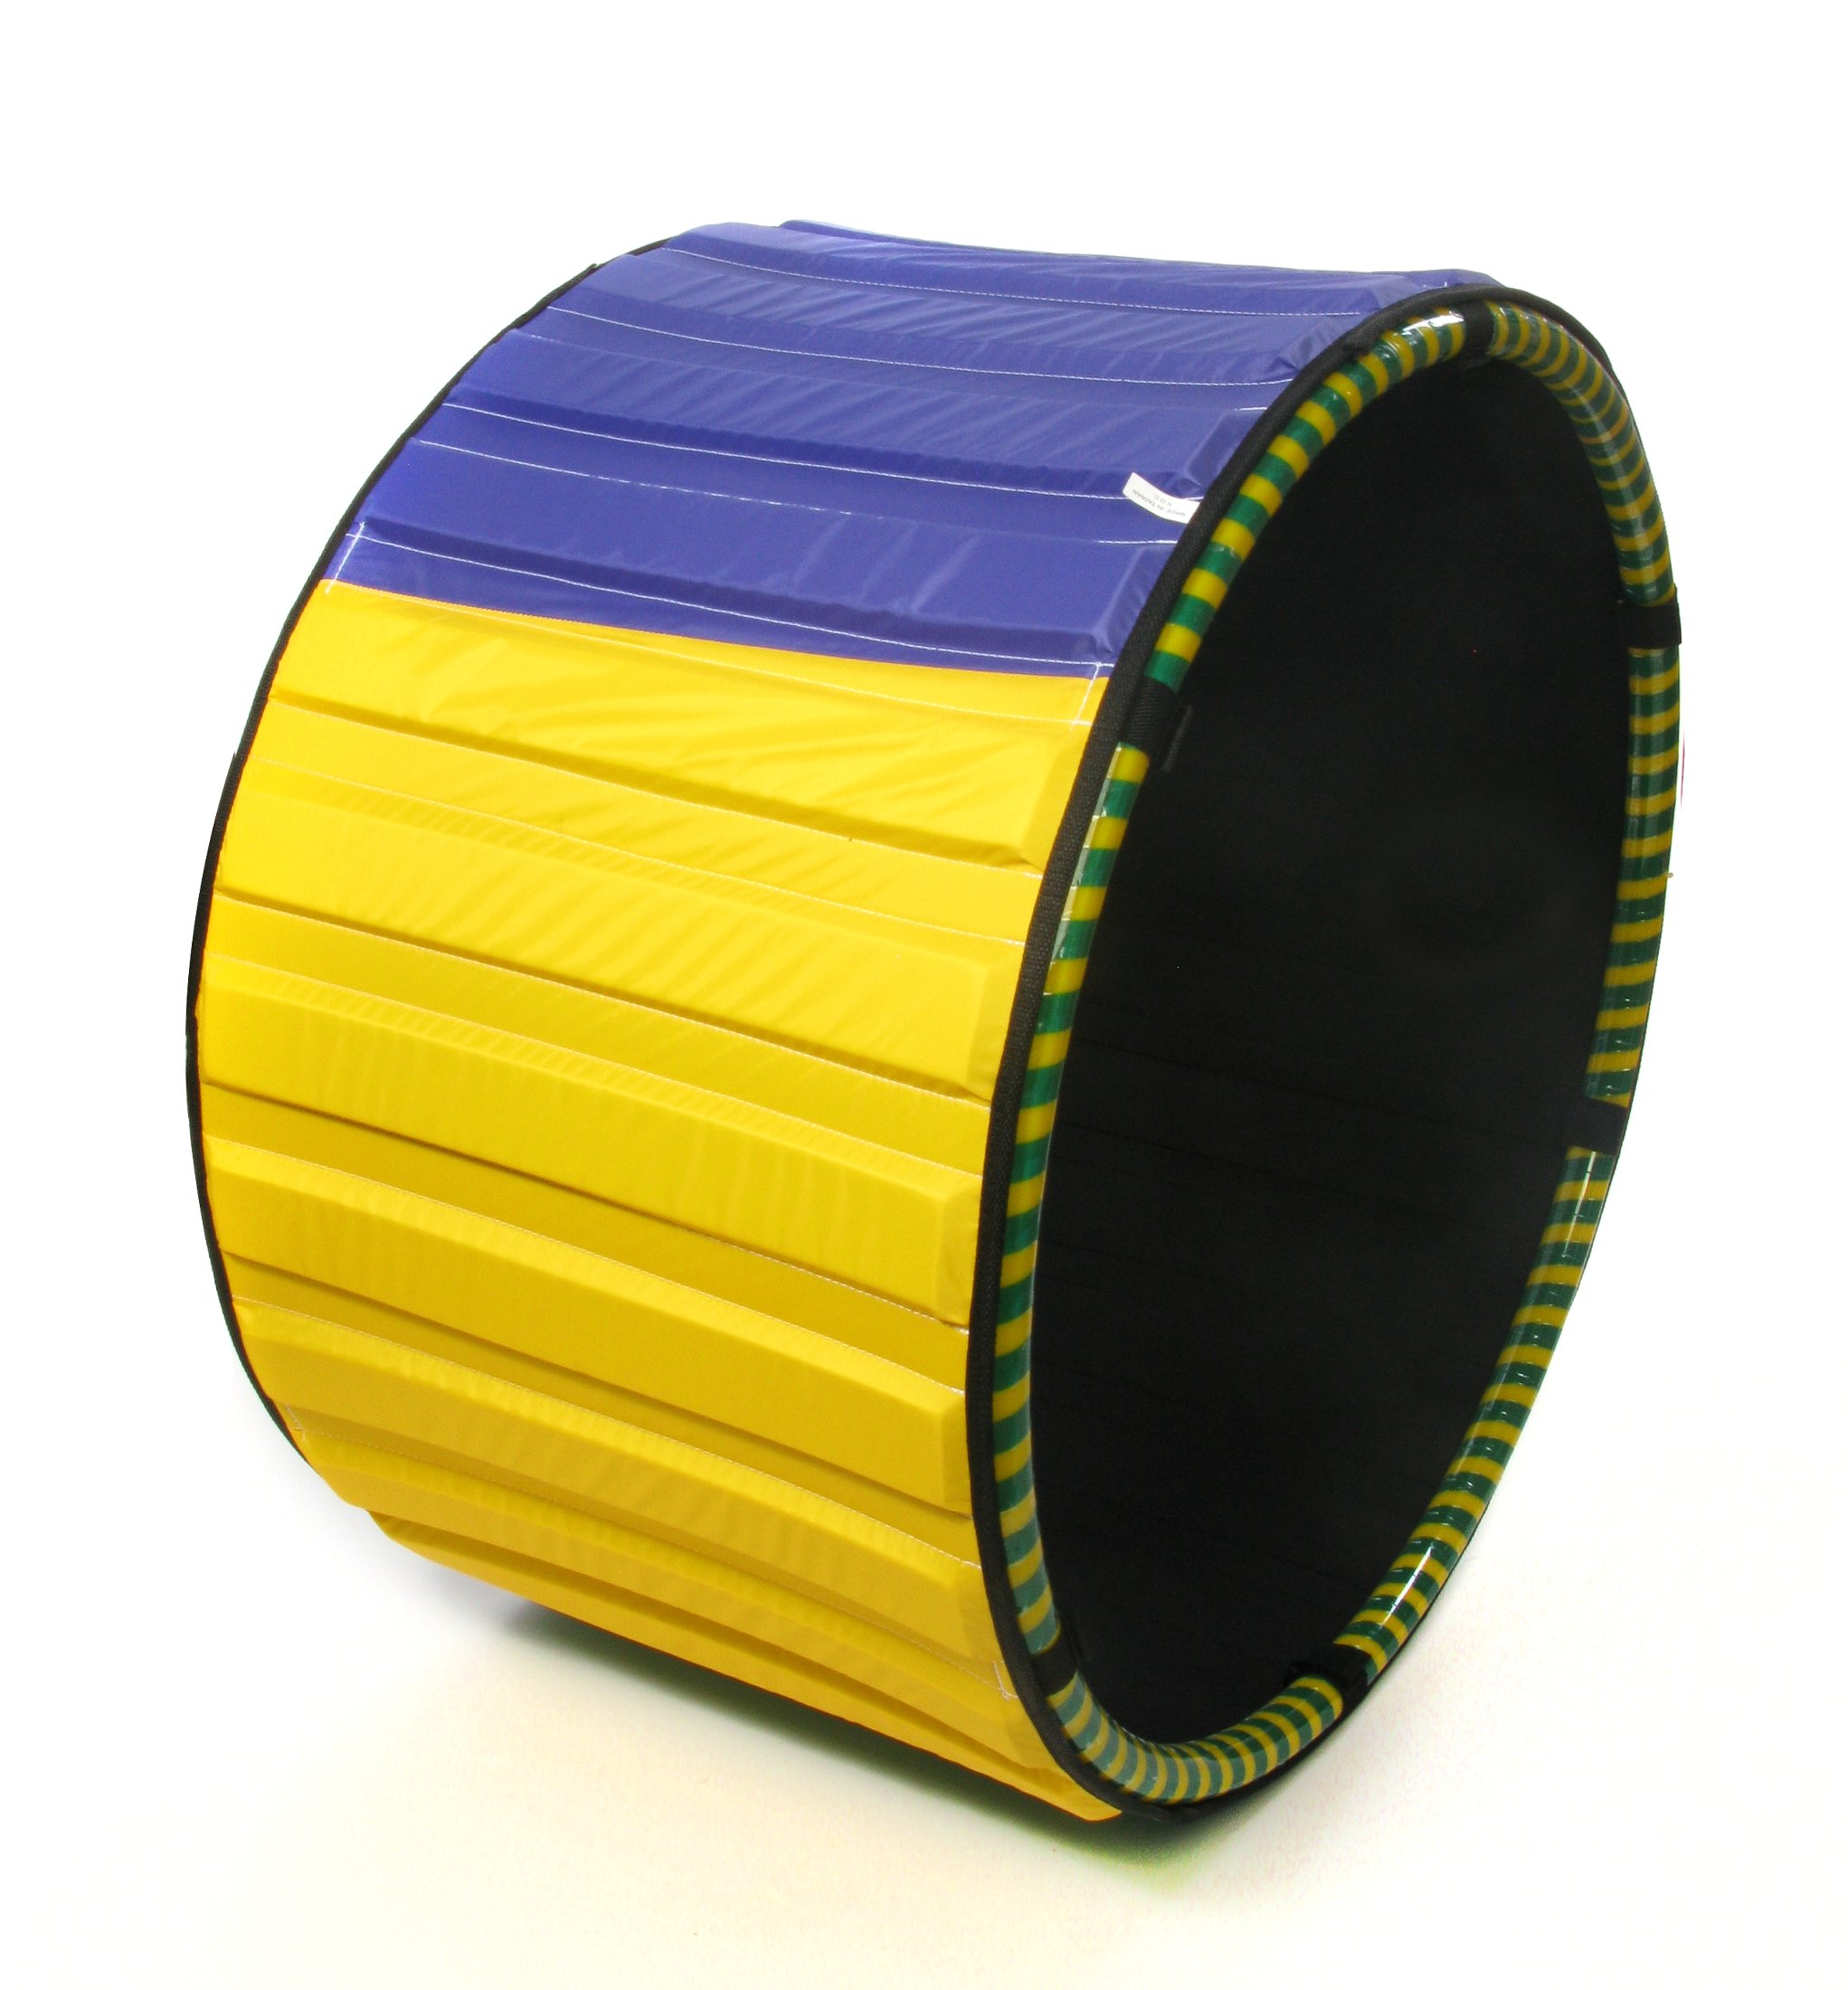 American Educational Products Crawling Tunnel, 34'' Diameter